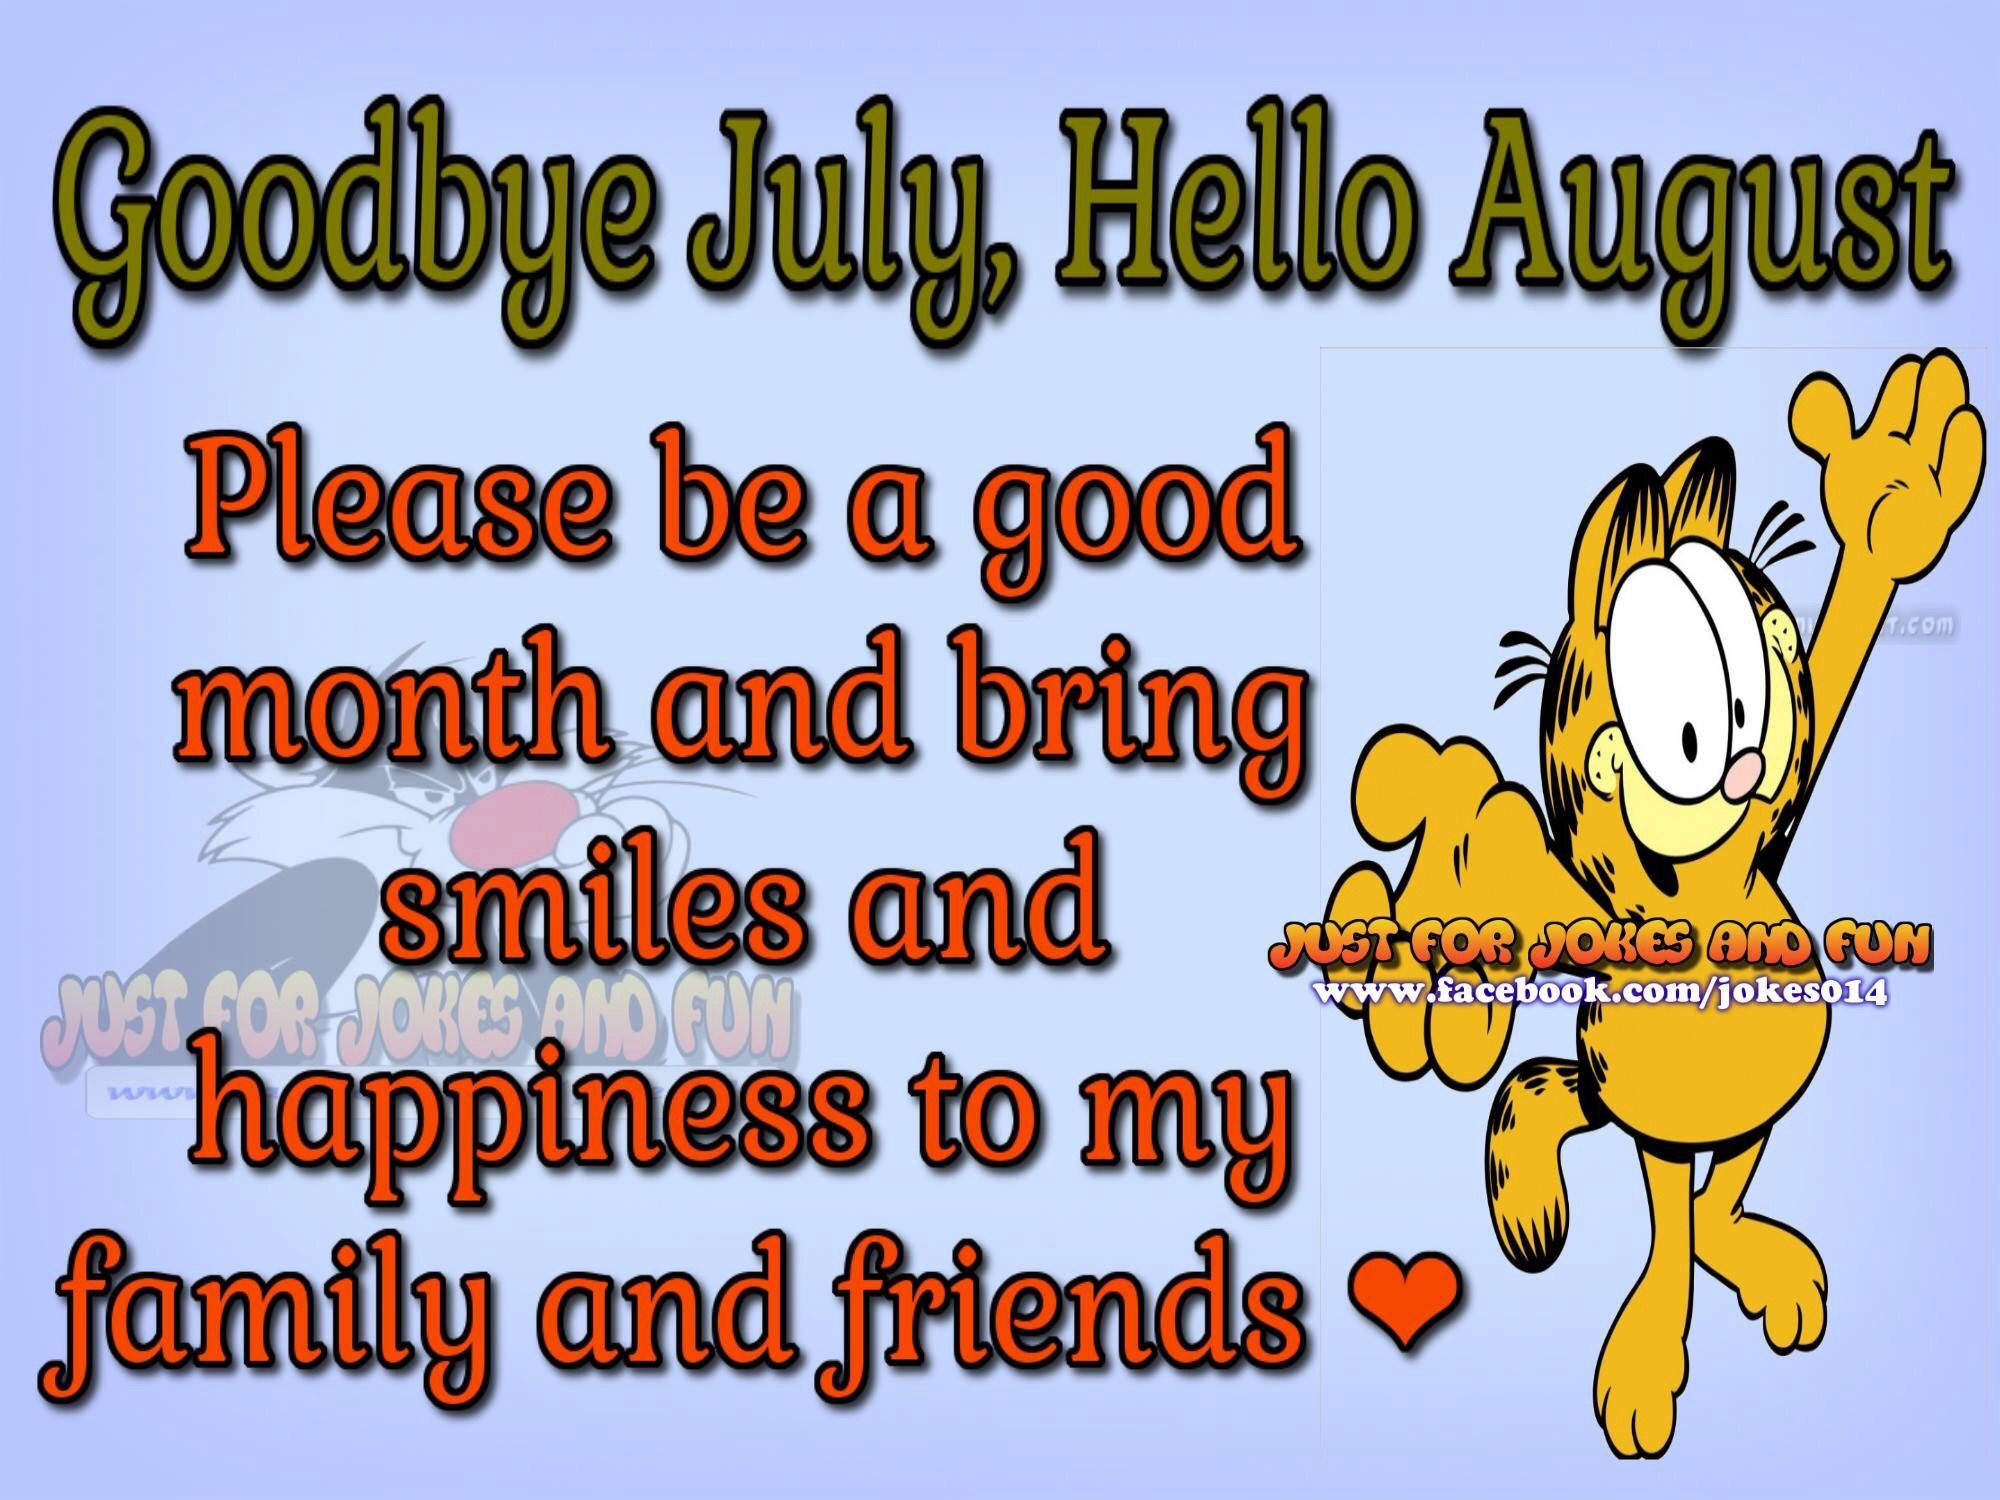 Goodbye July Hello August Images Pictures